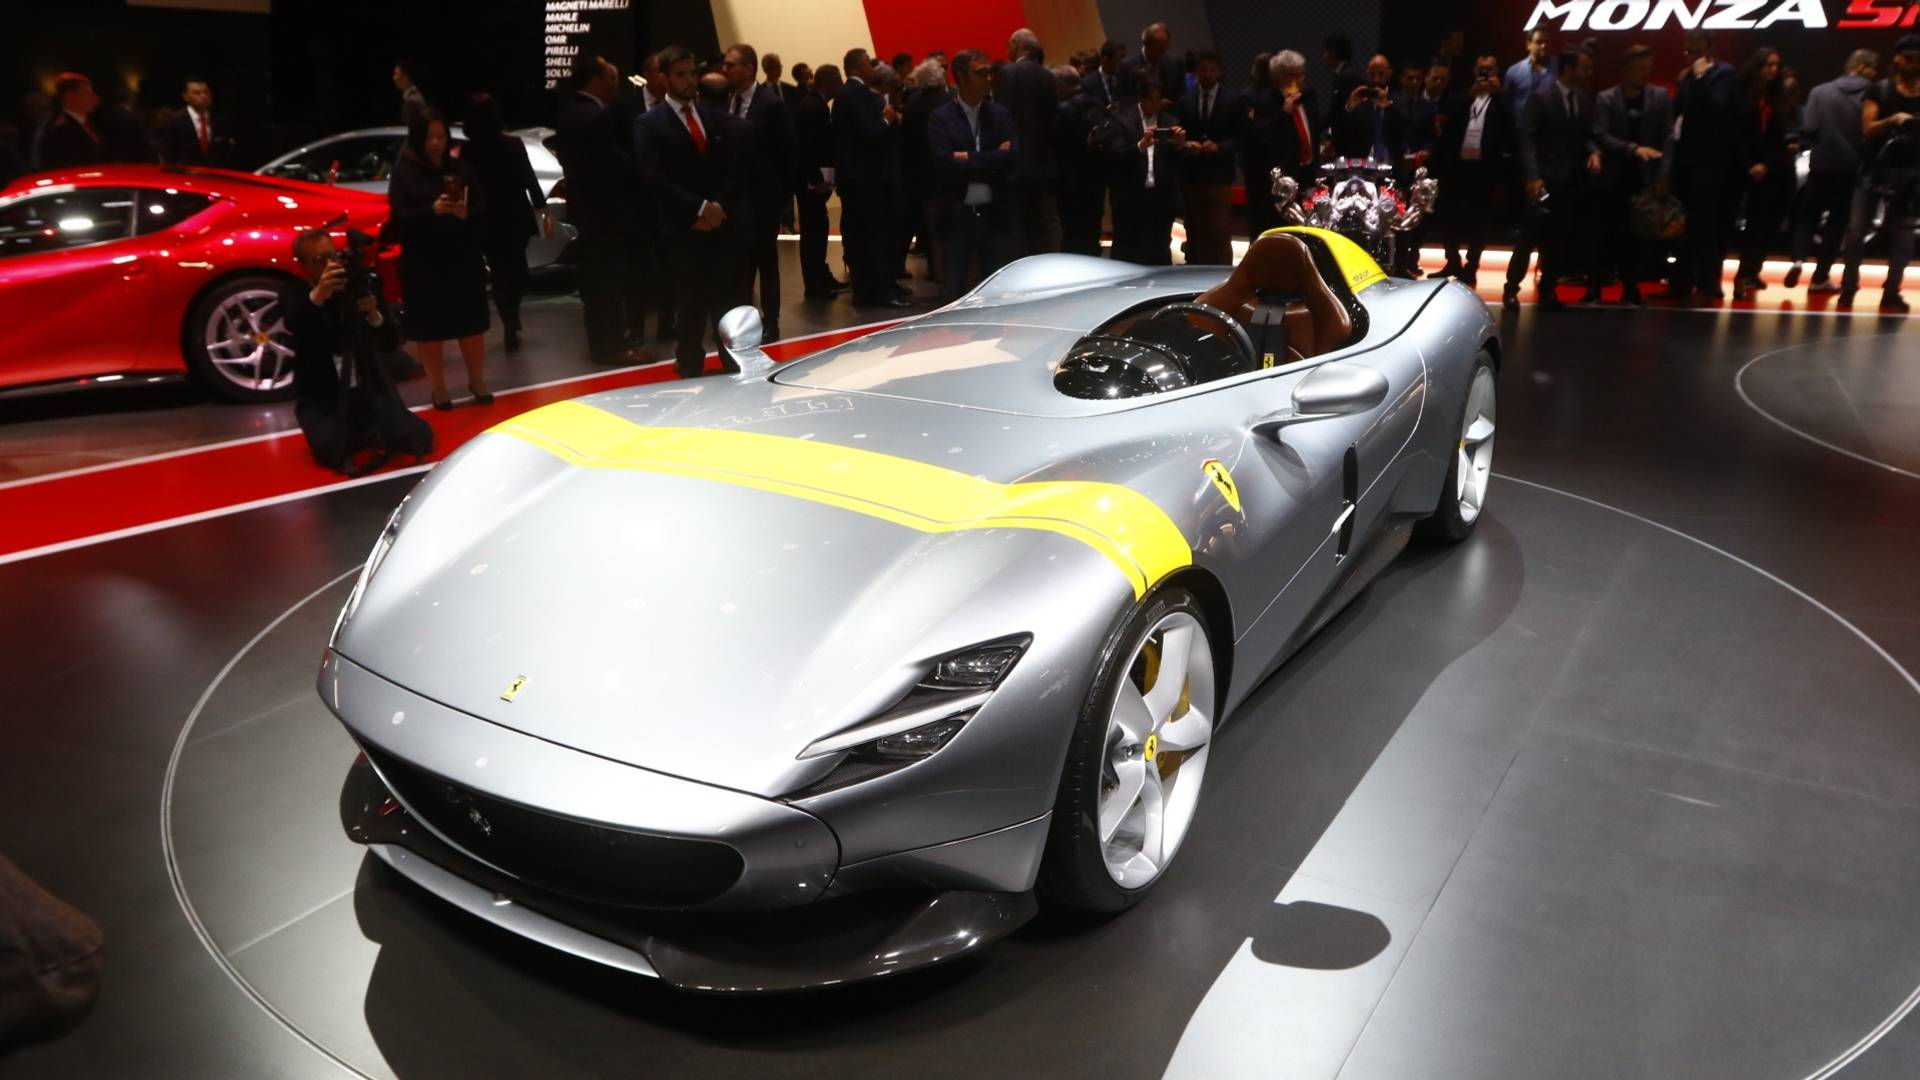 si u ph m ferrari monza sp1 v sp2 t i s n kh u paris motor show. Black Bedroom Furniture Sets. Home Design Ideas